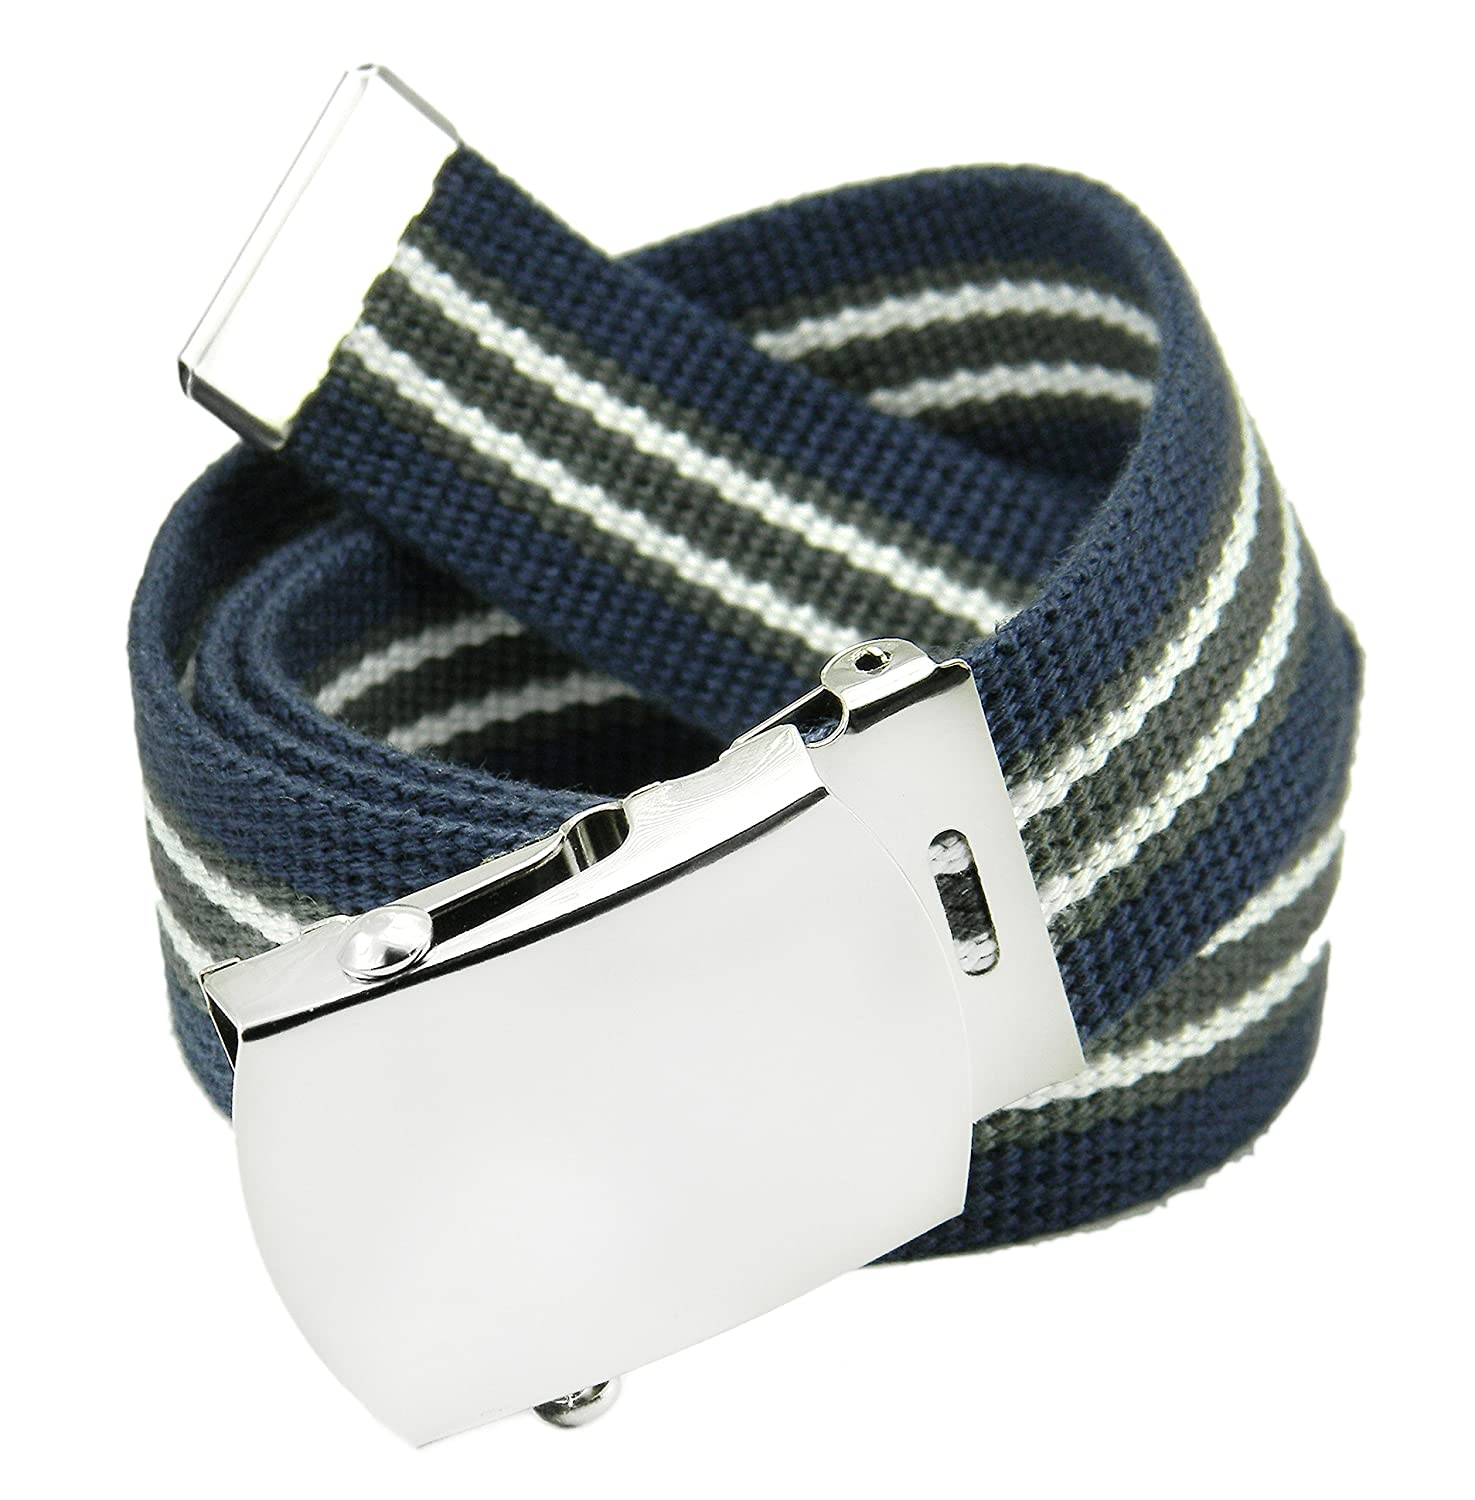 Boy's School Uniform Silver Slider Military Belt Buckle with Canvas Web Belt Husky X-Large White 8000-XL-WH